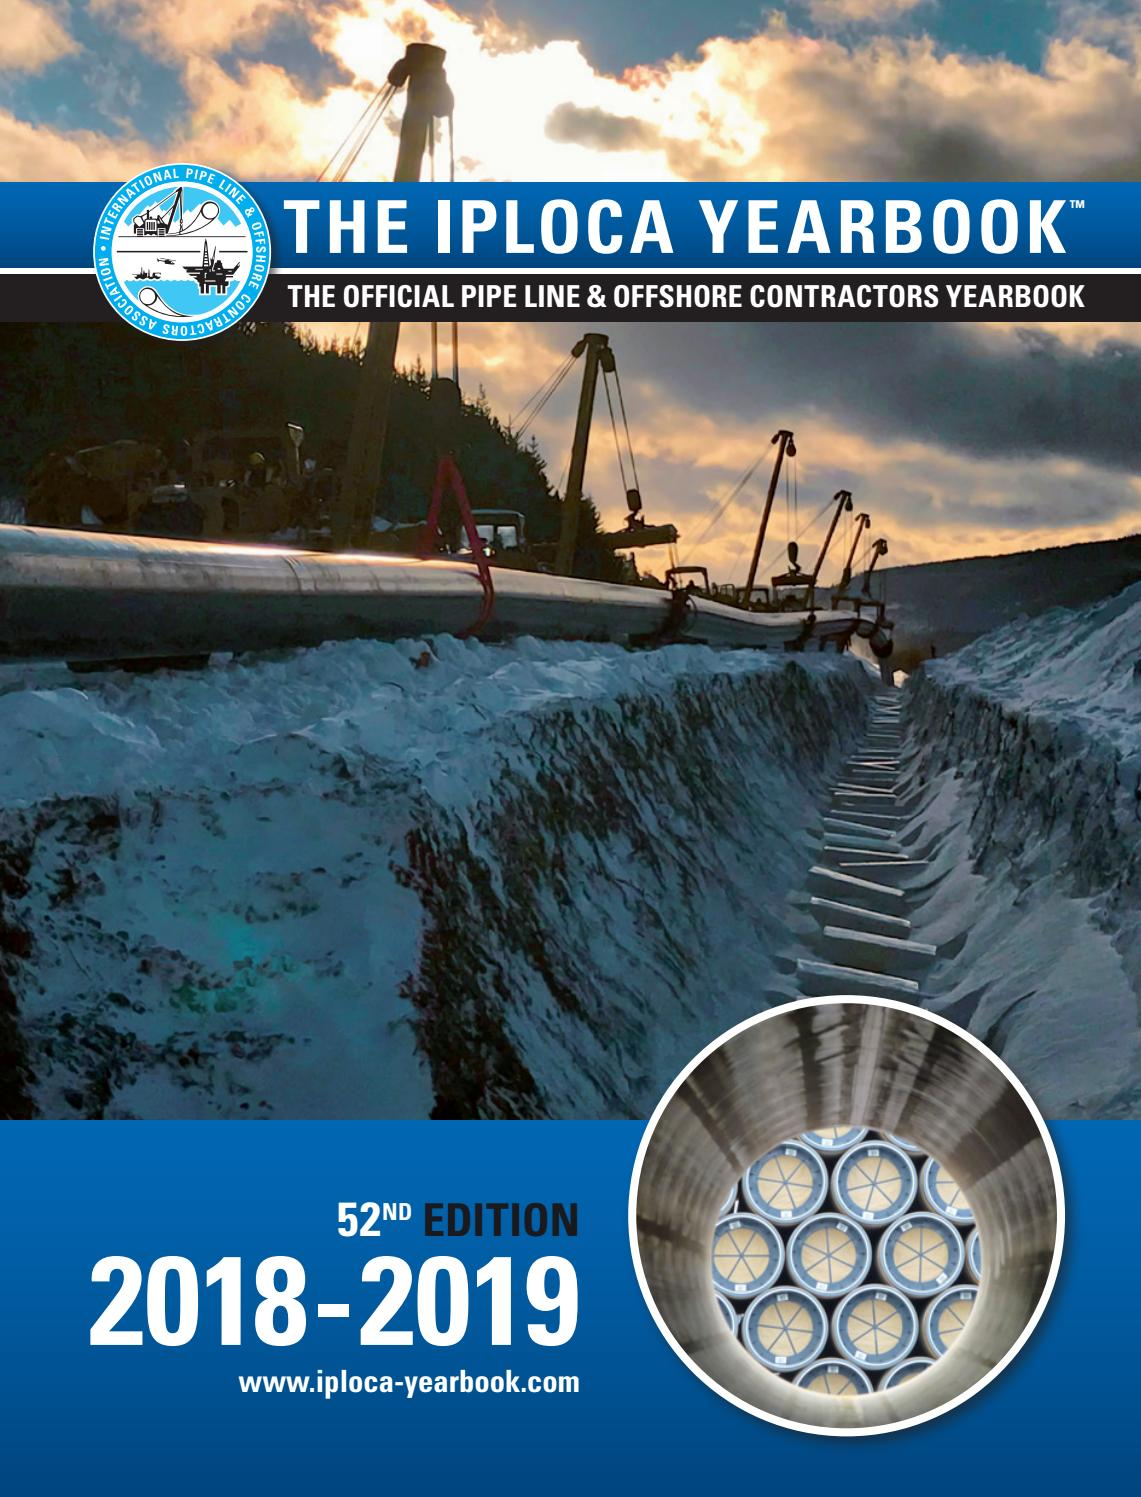 Acapulco Chair Duesseldorf Iploca Yearbook 2018 2019 By Pedemex Bv Issuu